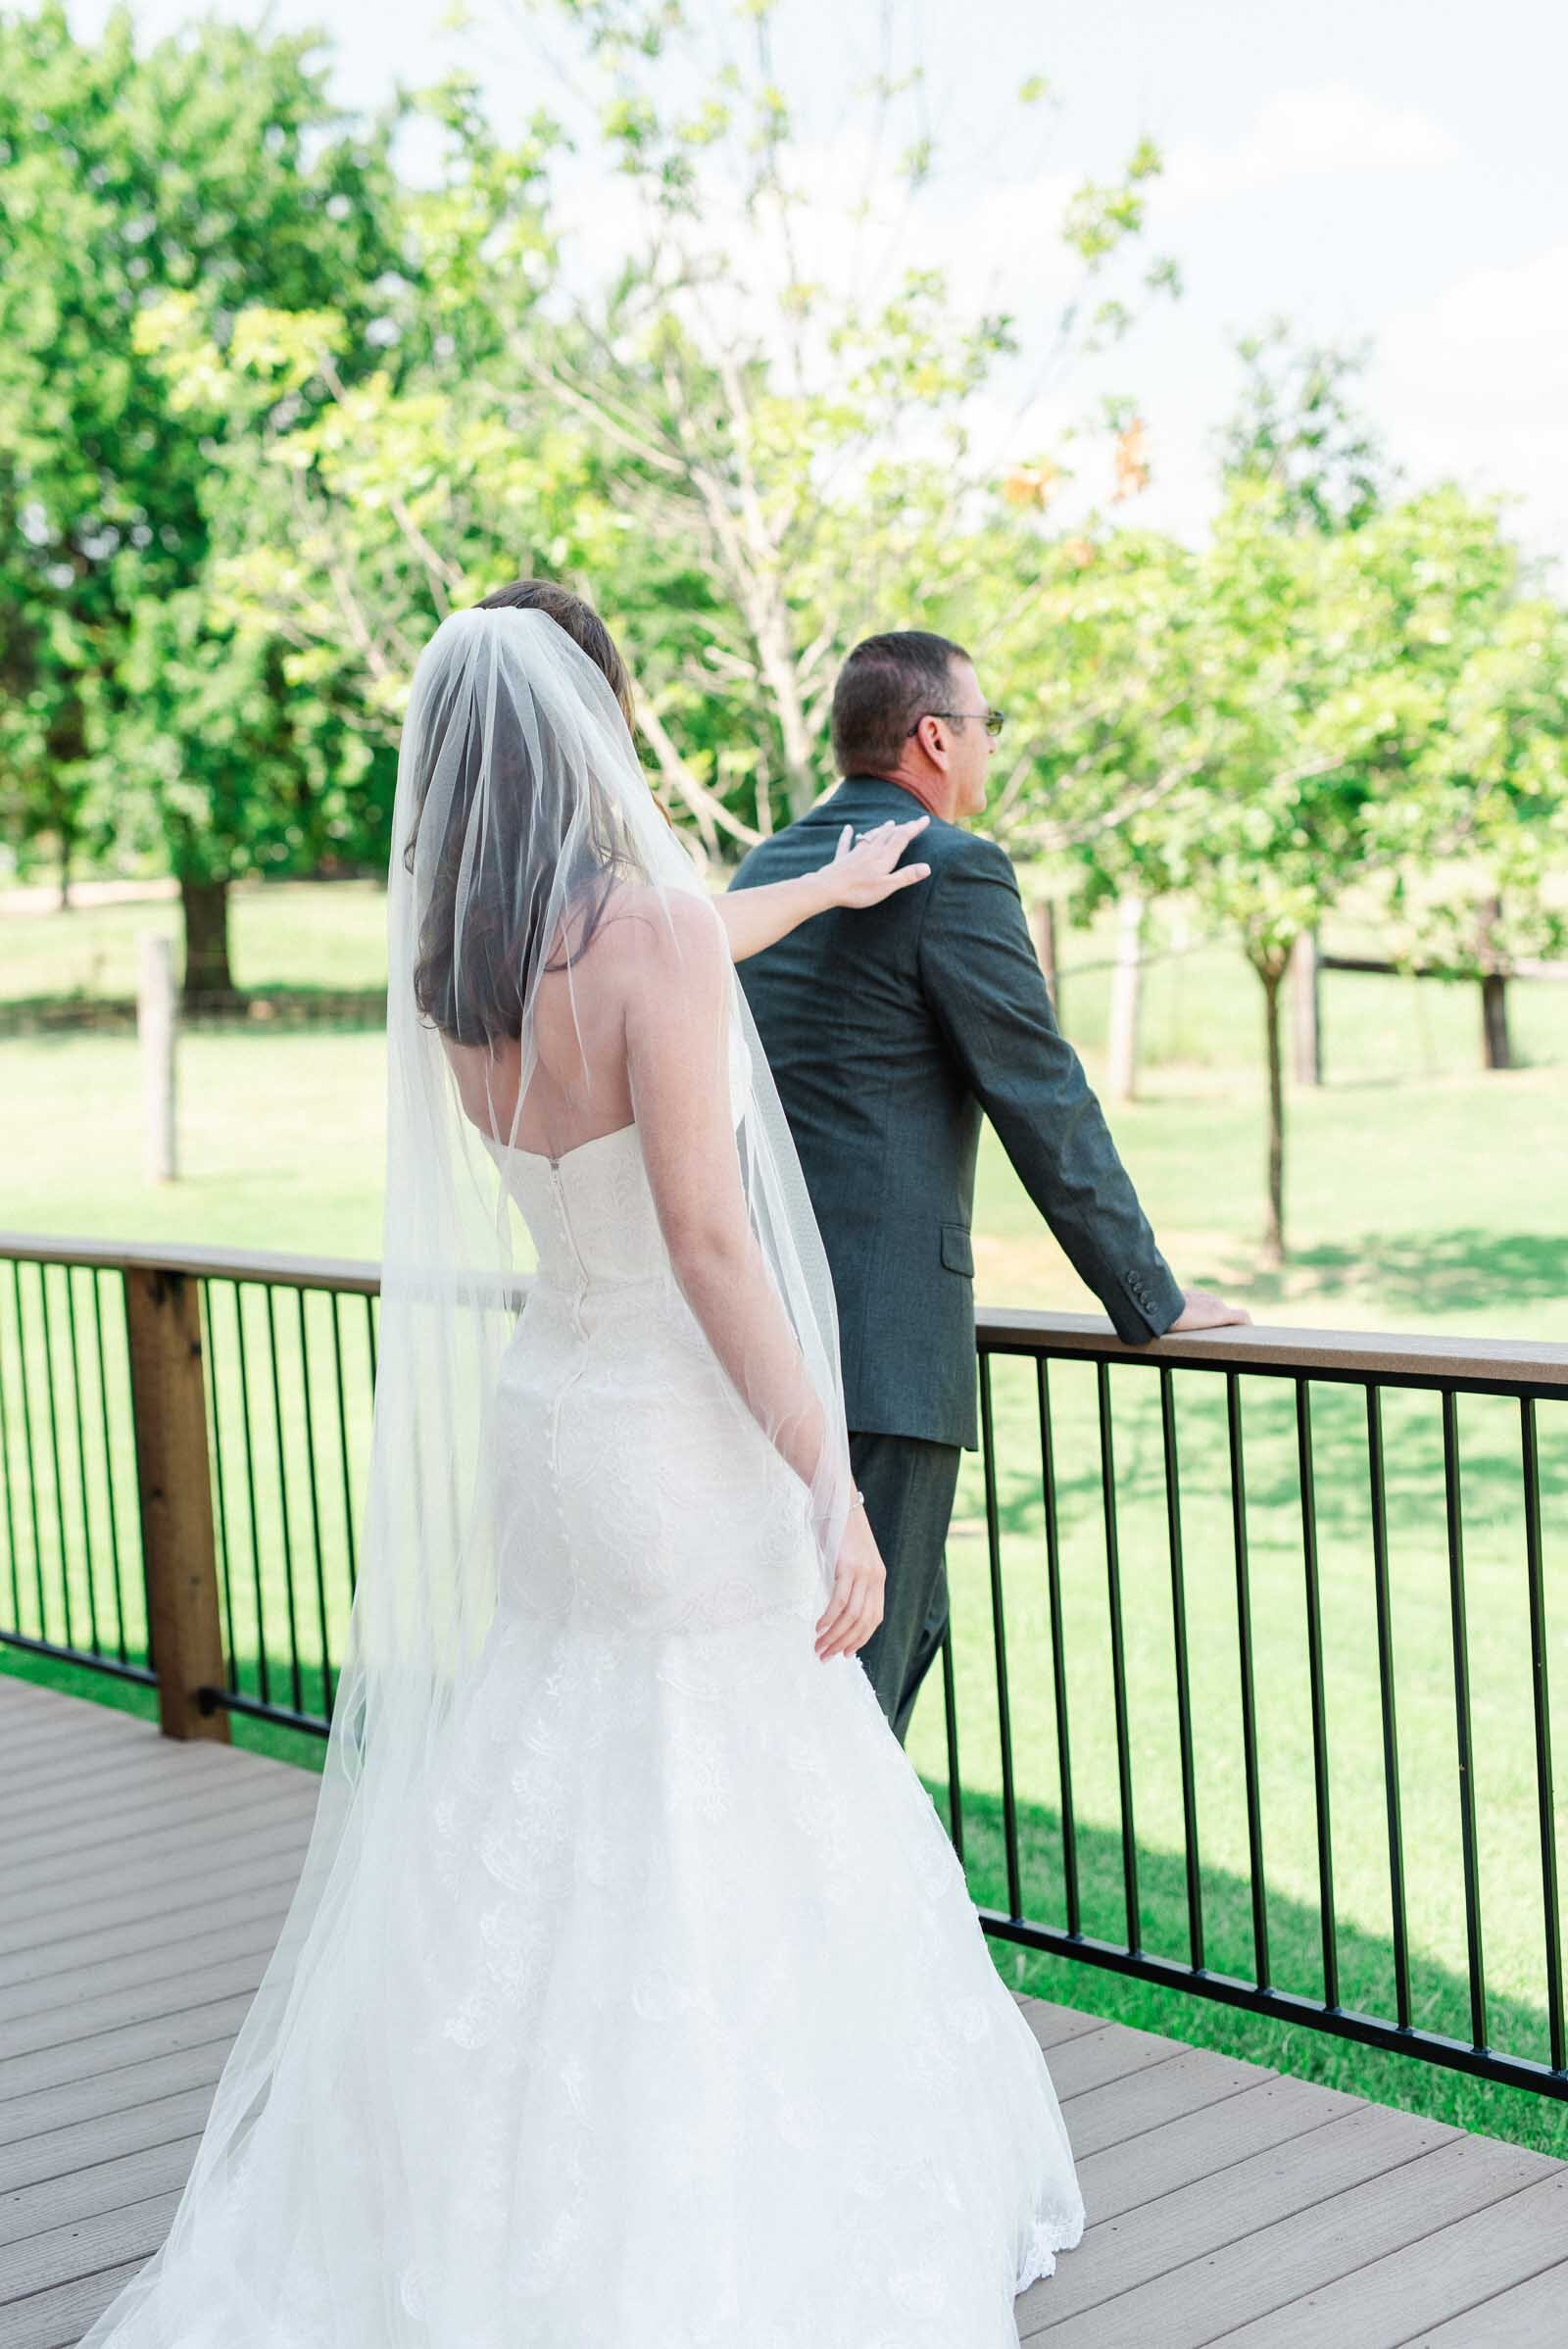 JenSymes_Emilee-Hoyt-Wedding-262.jpg